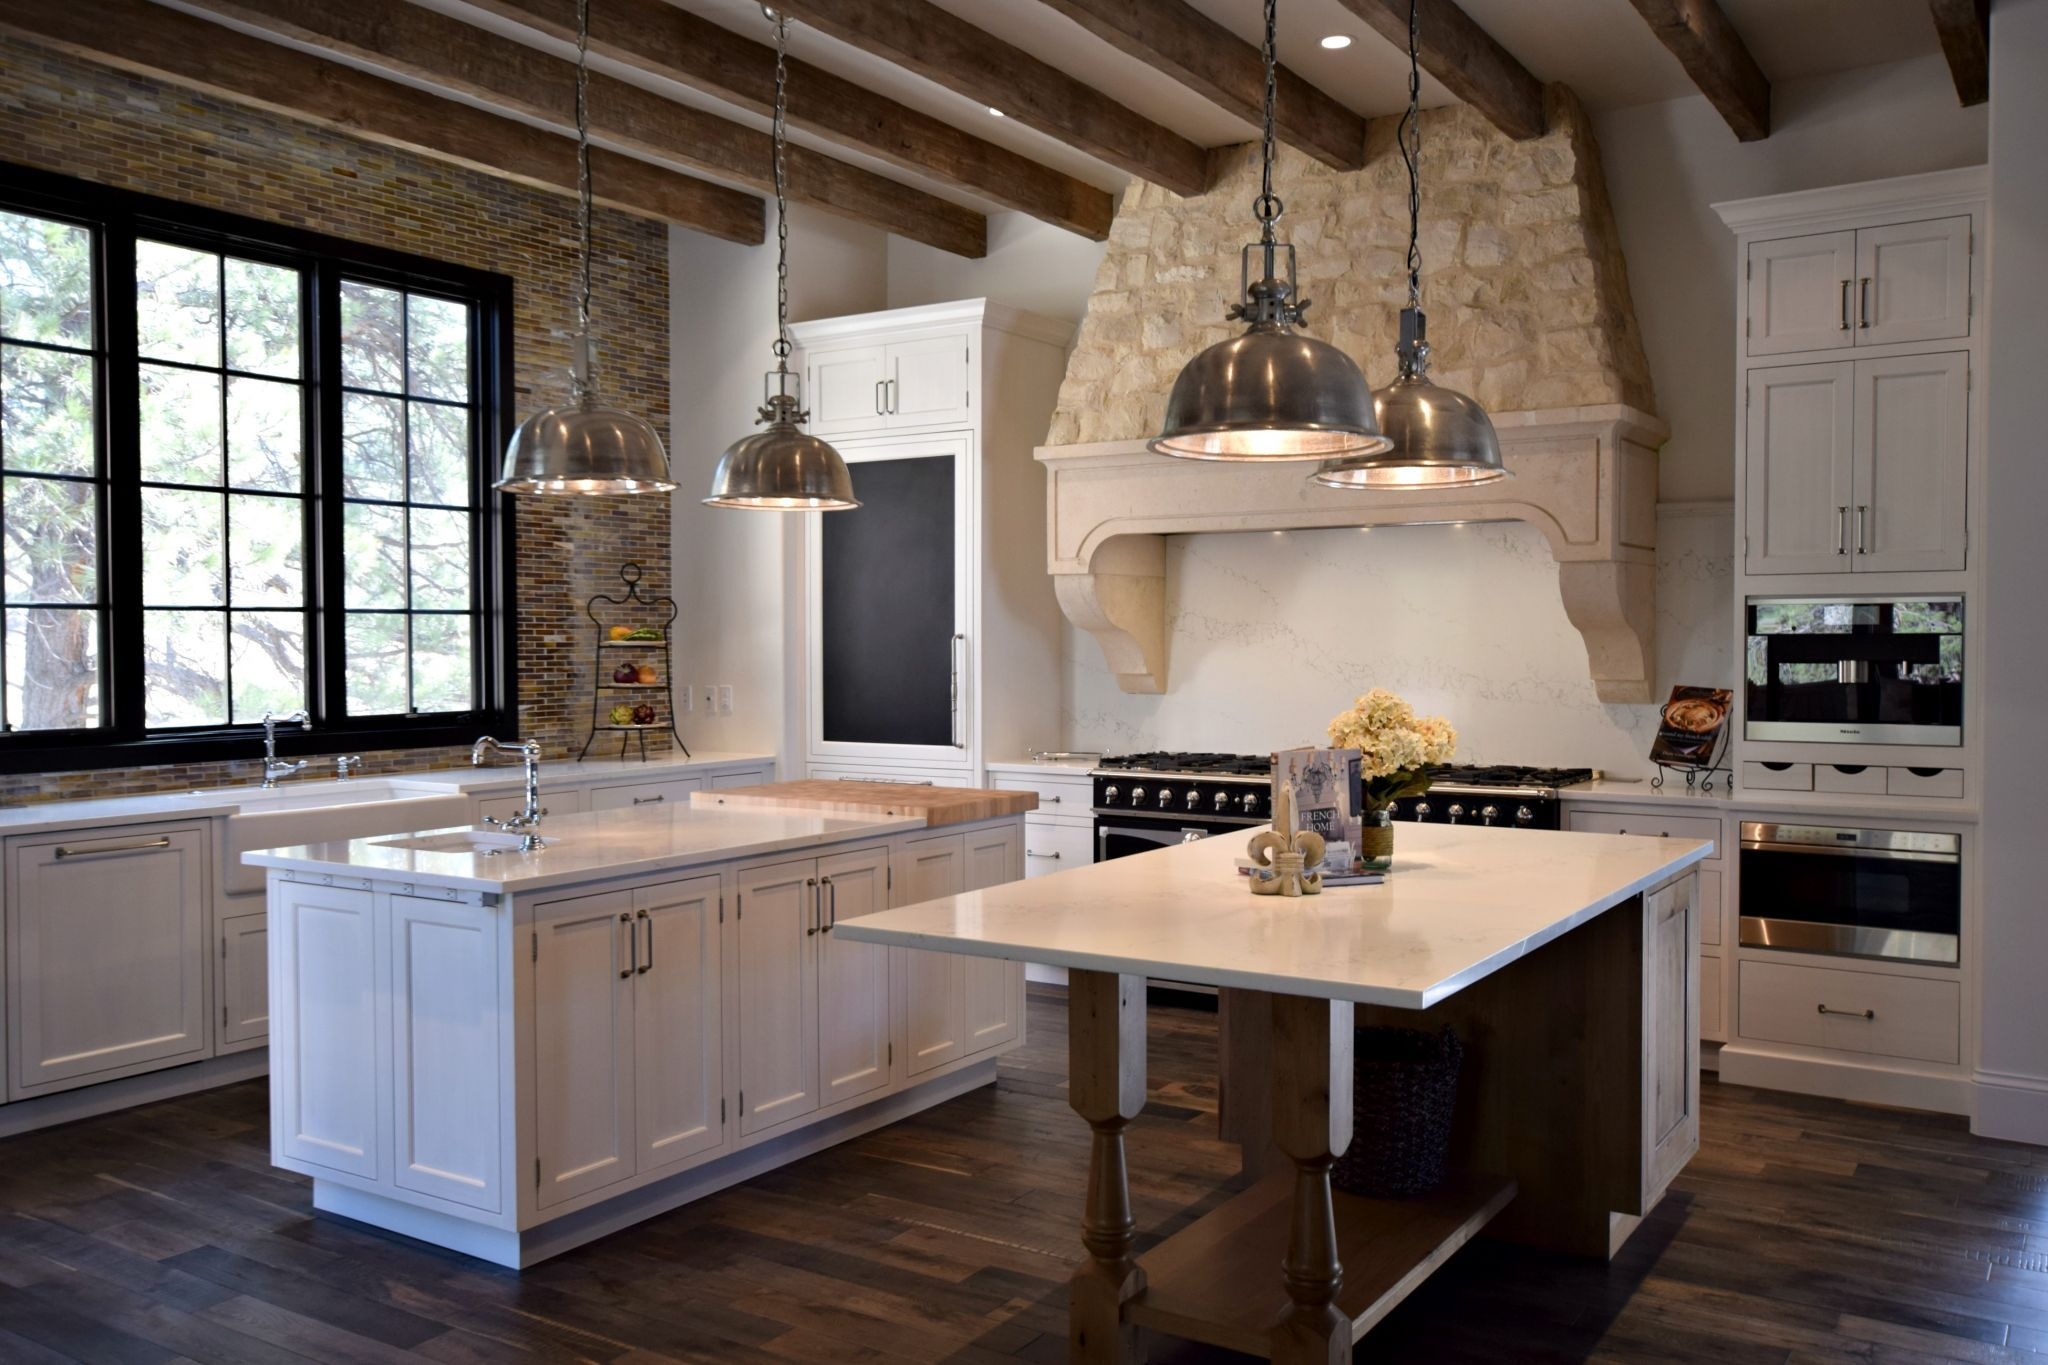 BKC Kitchen and Bath | Crystal Cabinets Denver | Traditional ...